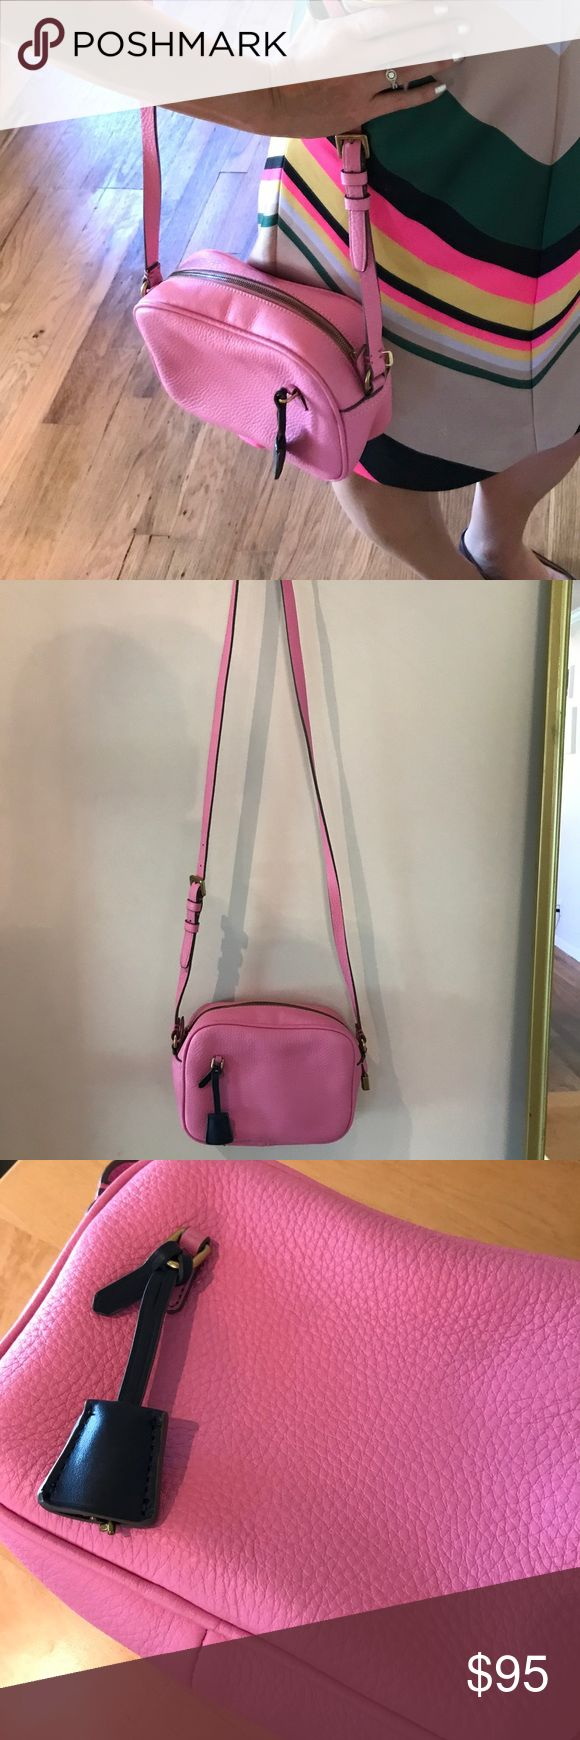 J Crew Pink Signet Bag Carried one time. This bag is super cute just a little small for me. Navy key cover for lock. Adjustable cross body strap. Excellent used condition. NO TRADES - REASONABLE OFFERS CONSIDERED THROUGH OFFERS BUTTON J. Crew Bags Crossbody Bags